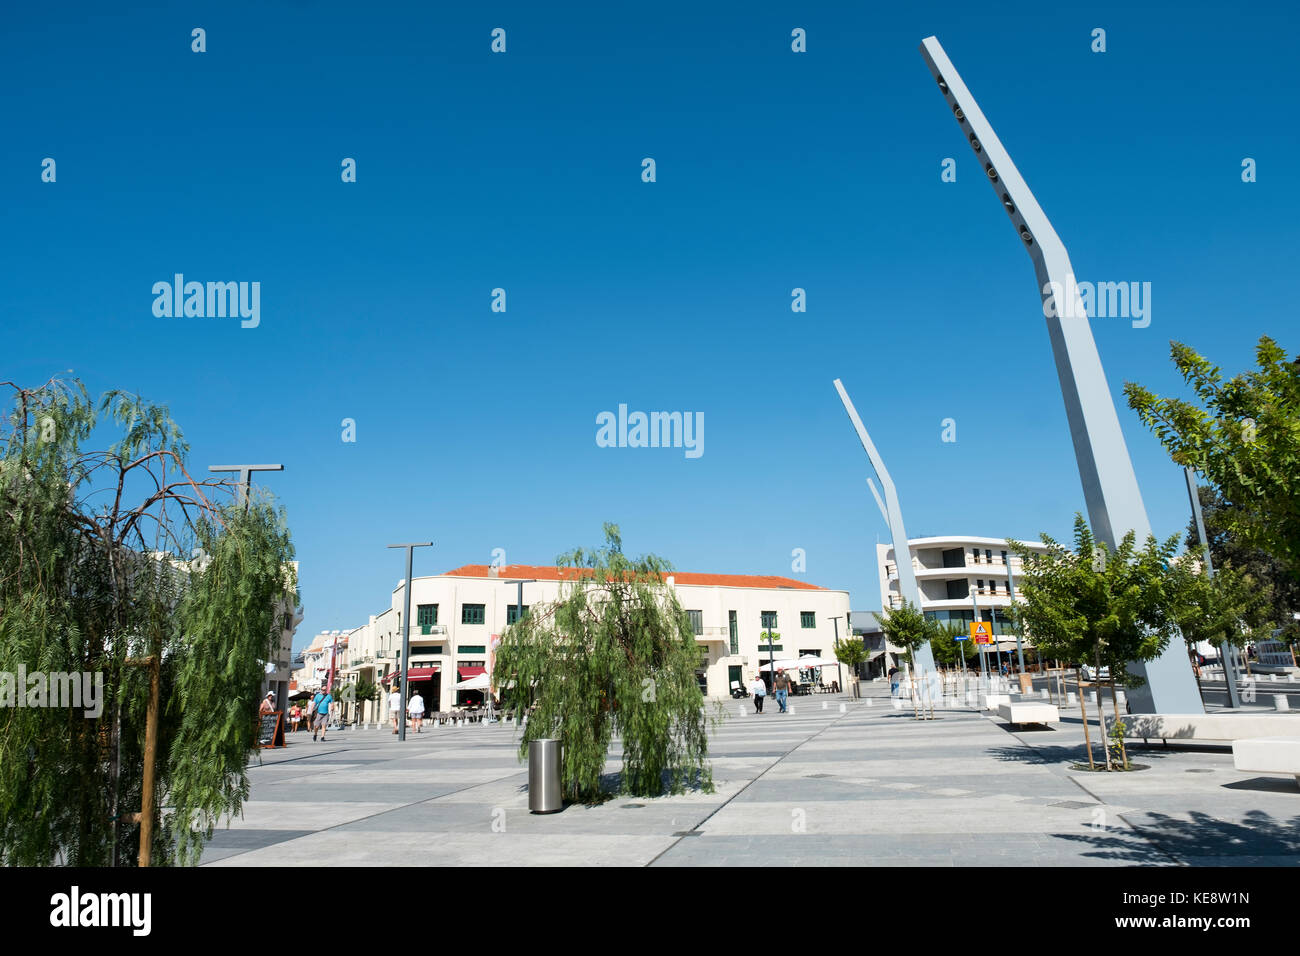 The newly upgraded Kennedy Square in Paphos Old Town to coincide with Pafos European City of Culture 2017 celebrations. Stock Photo